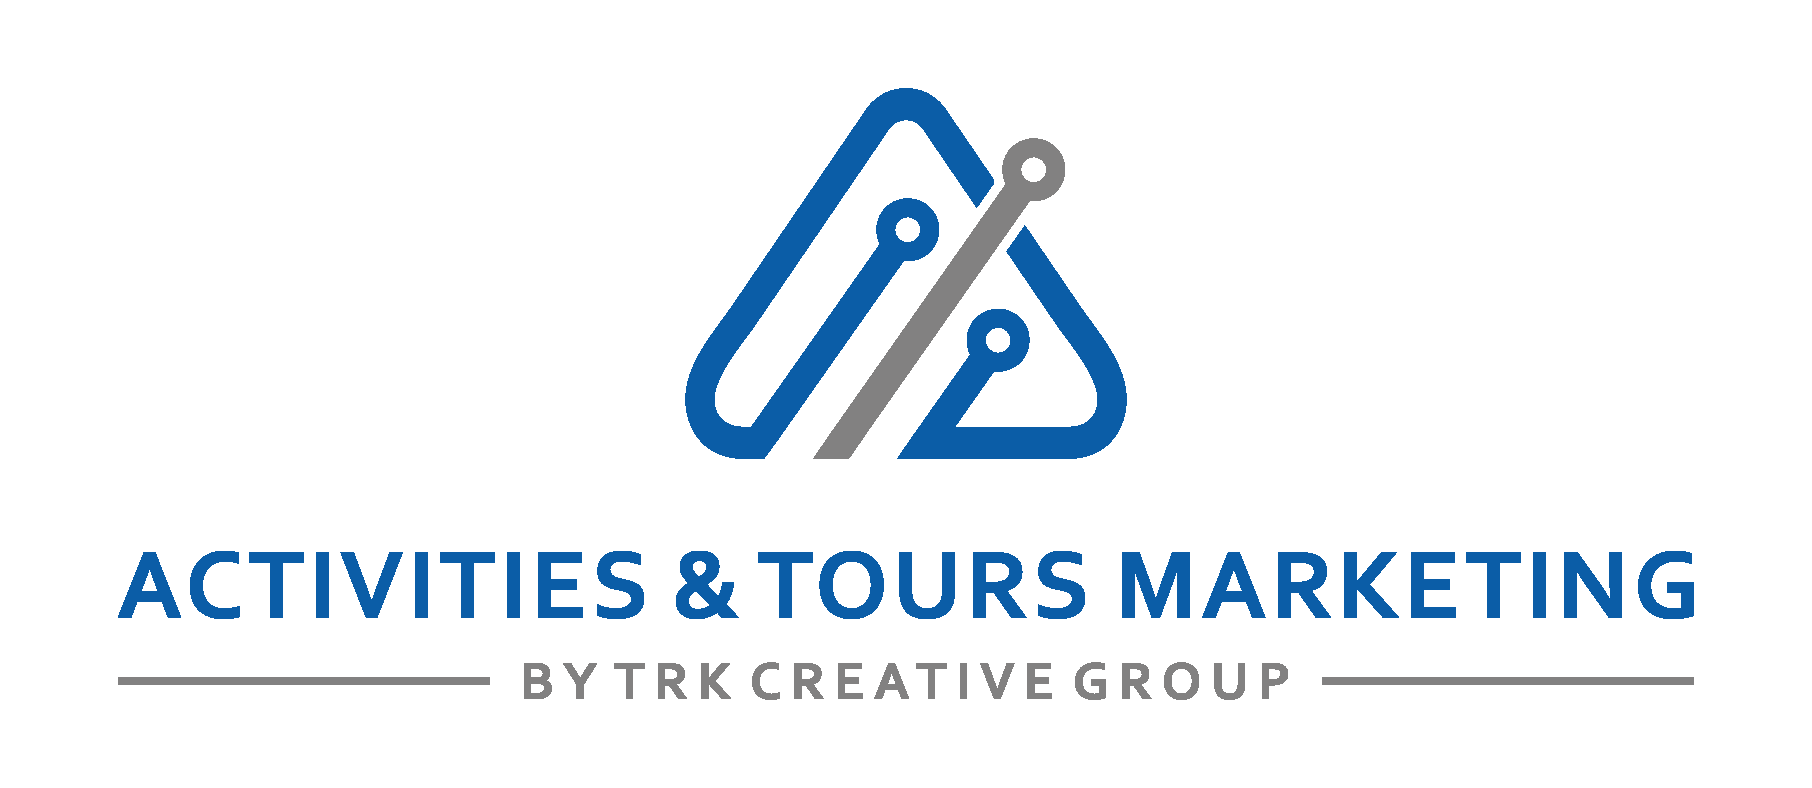 Activities & Tours Marketing by TRK Creative Group